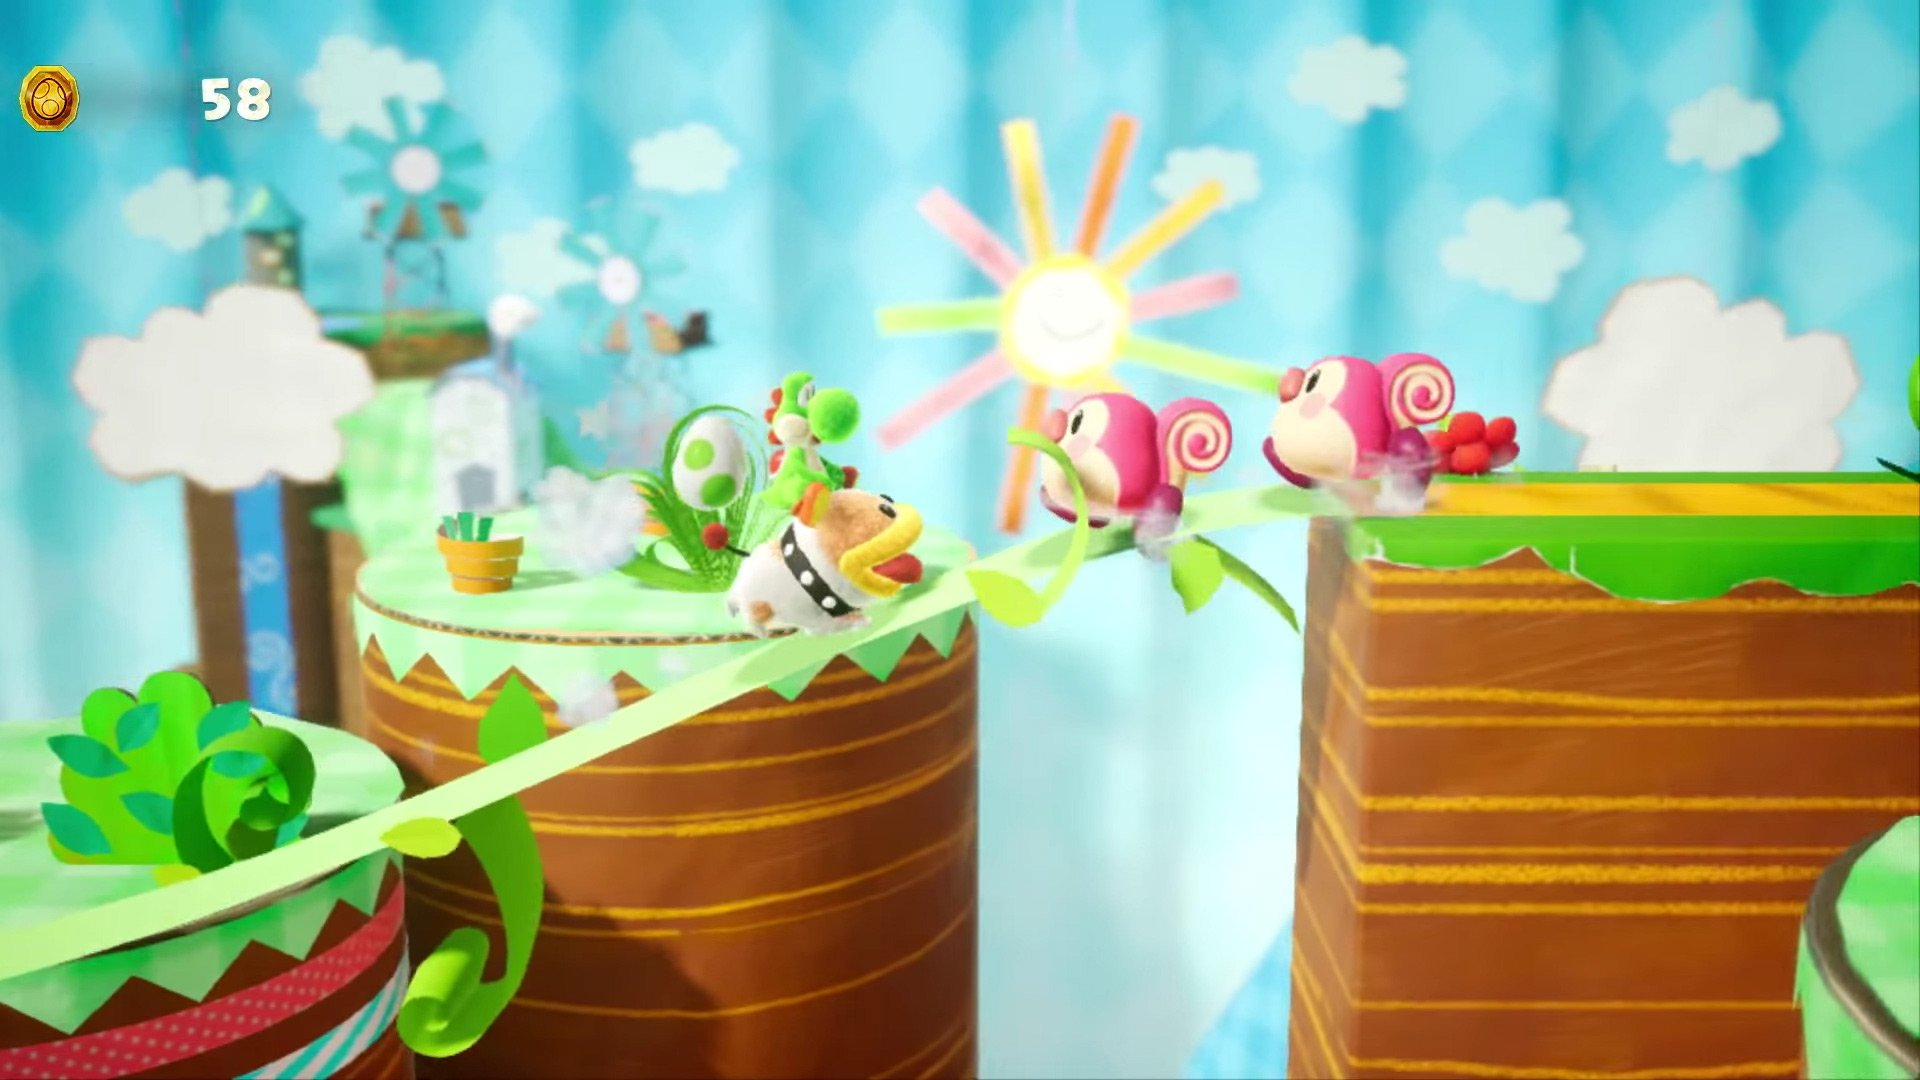 yoshis crafted world desktop wallpaper 67346